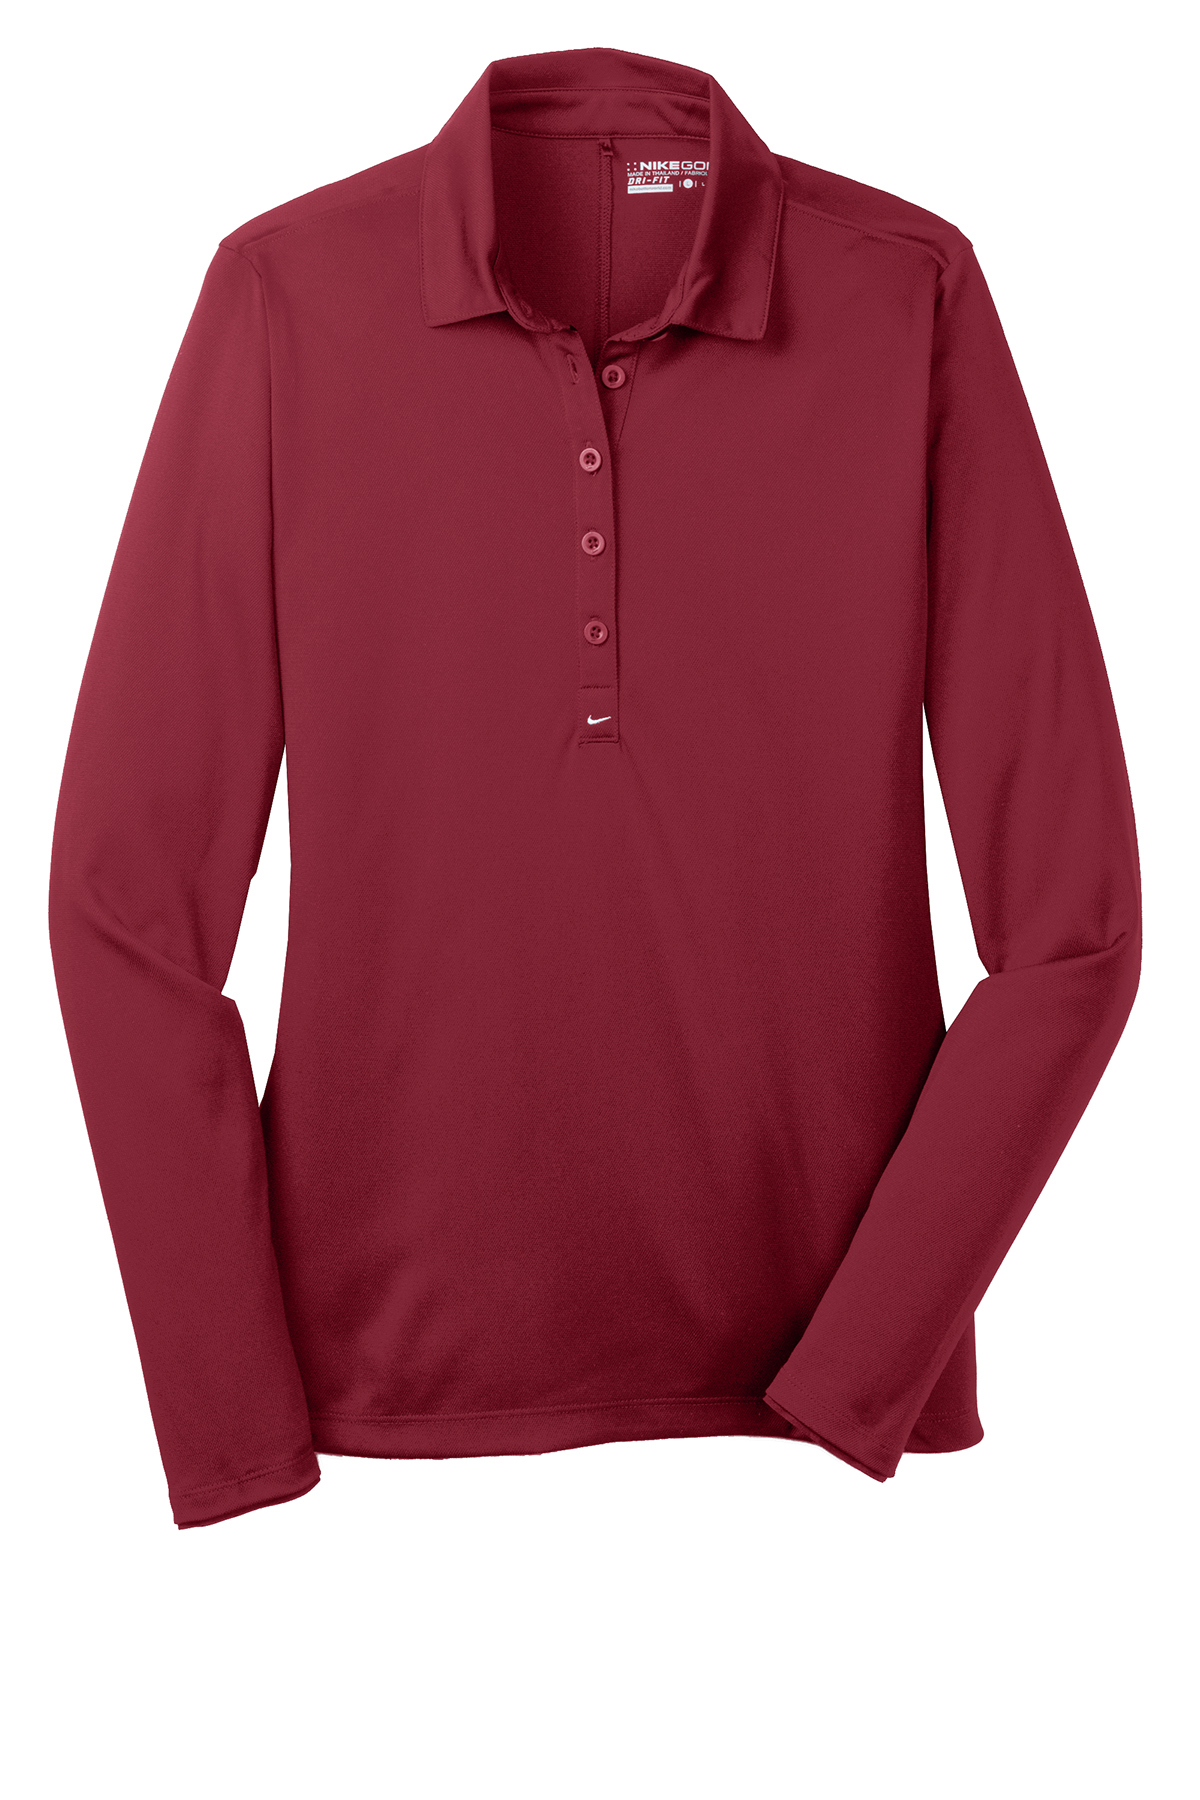 c4c295345 ... Nike Ladies Long Sleeve Dri-FIT Stretch Tech Polo. A maximum of 8 logos  have been uploaded. Please remove a logo from My Logos to continue